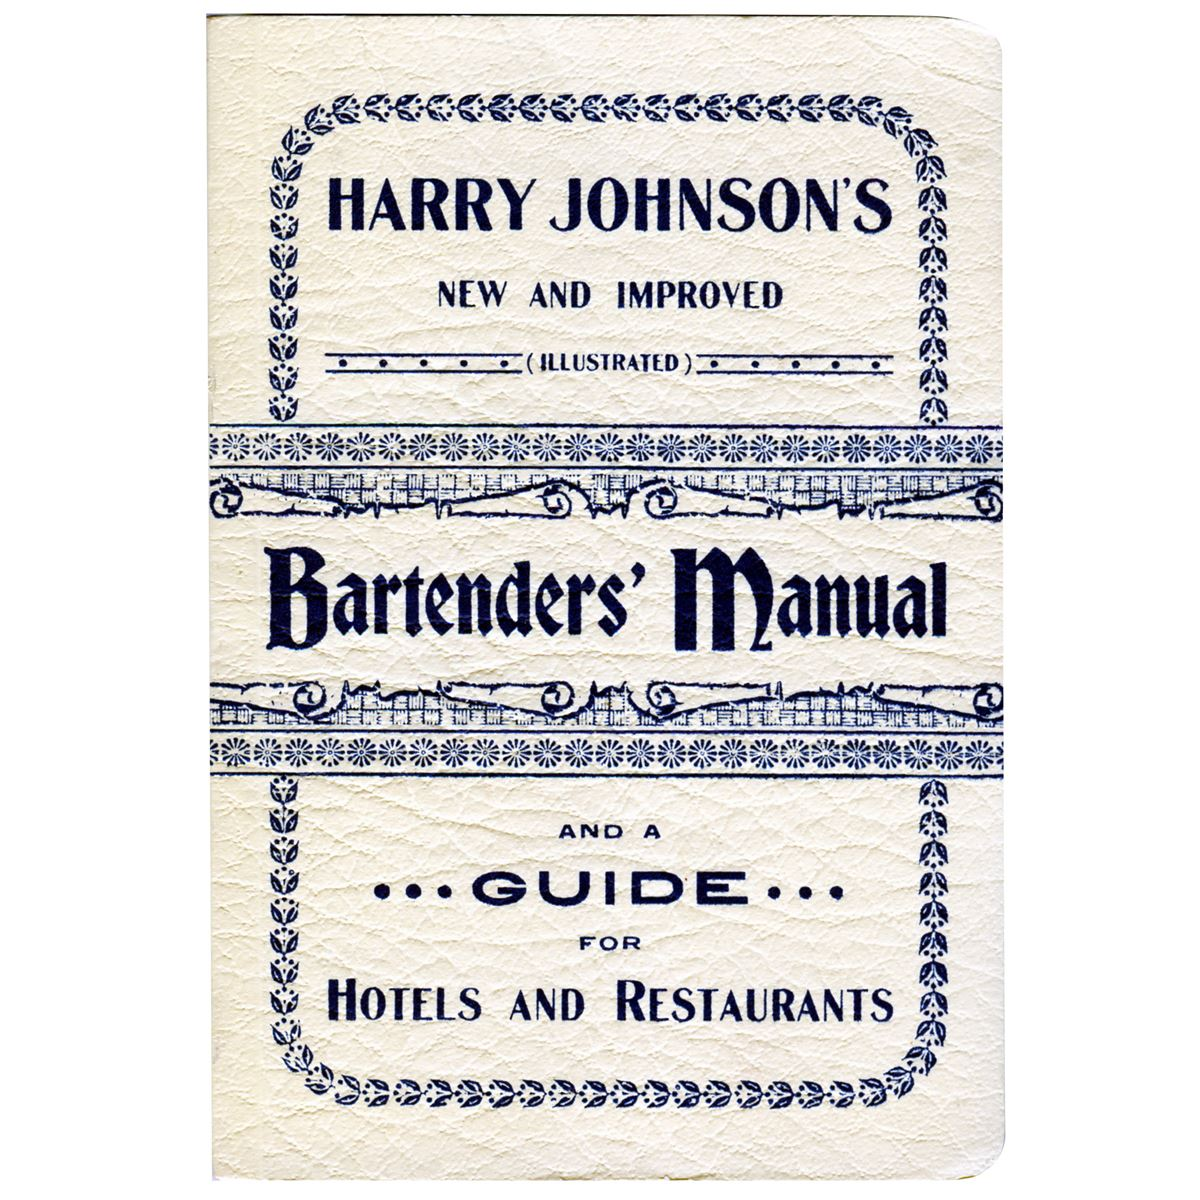 HARRY JOHNSONS BARTENDERS MANUAL